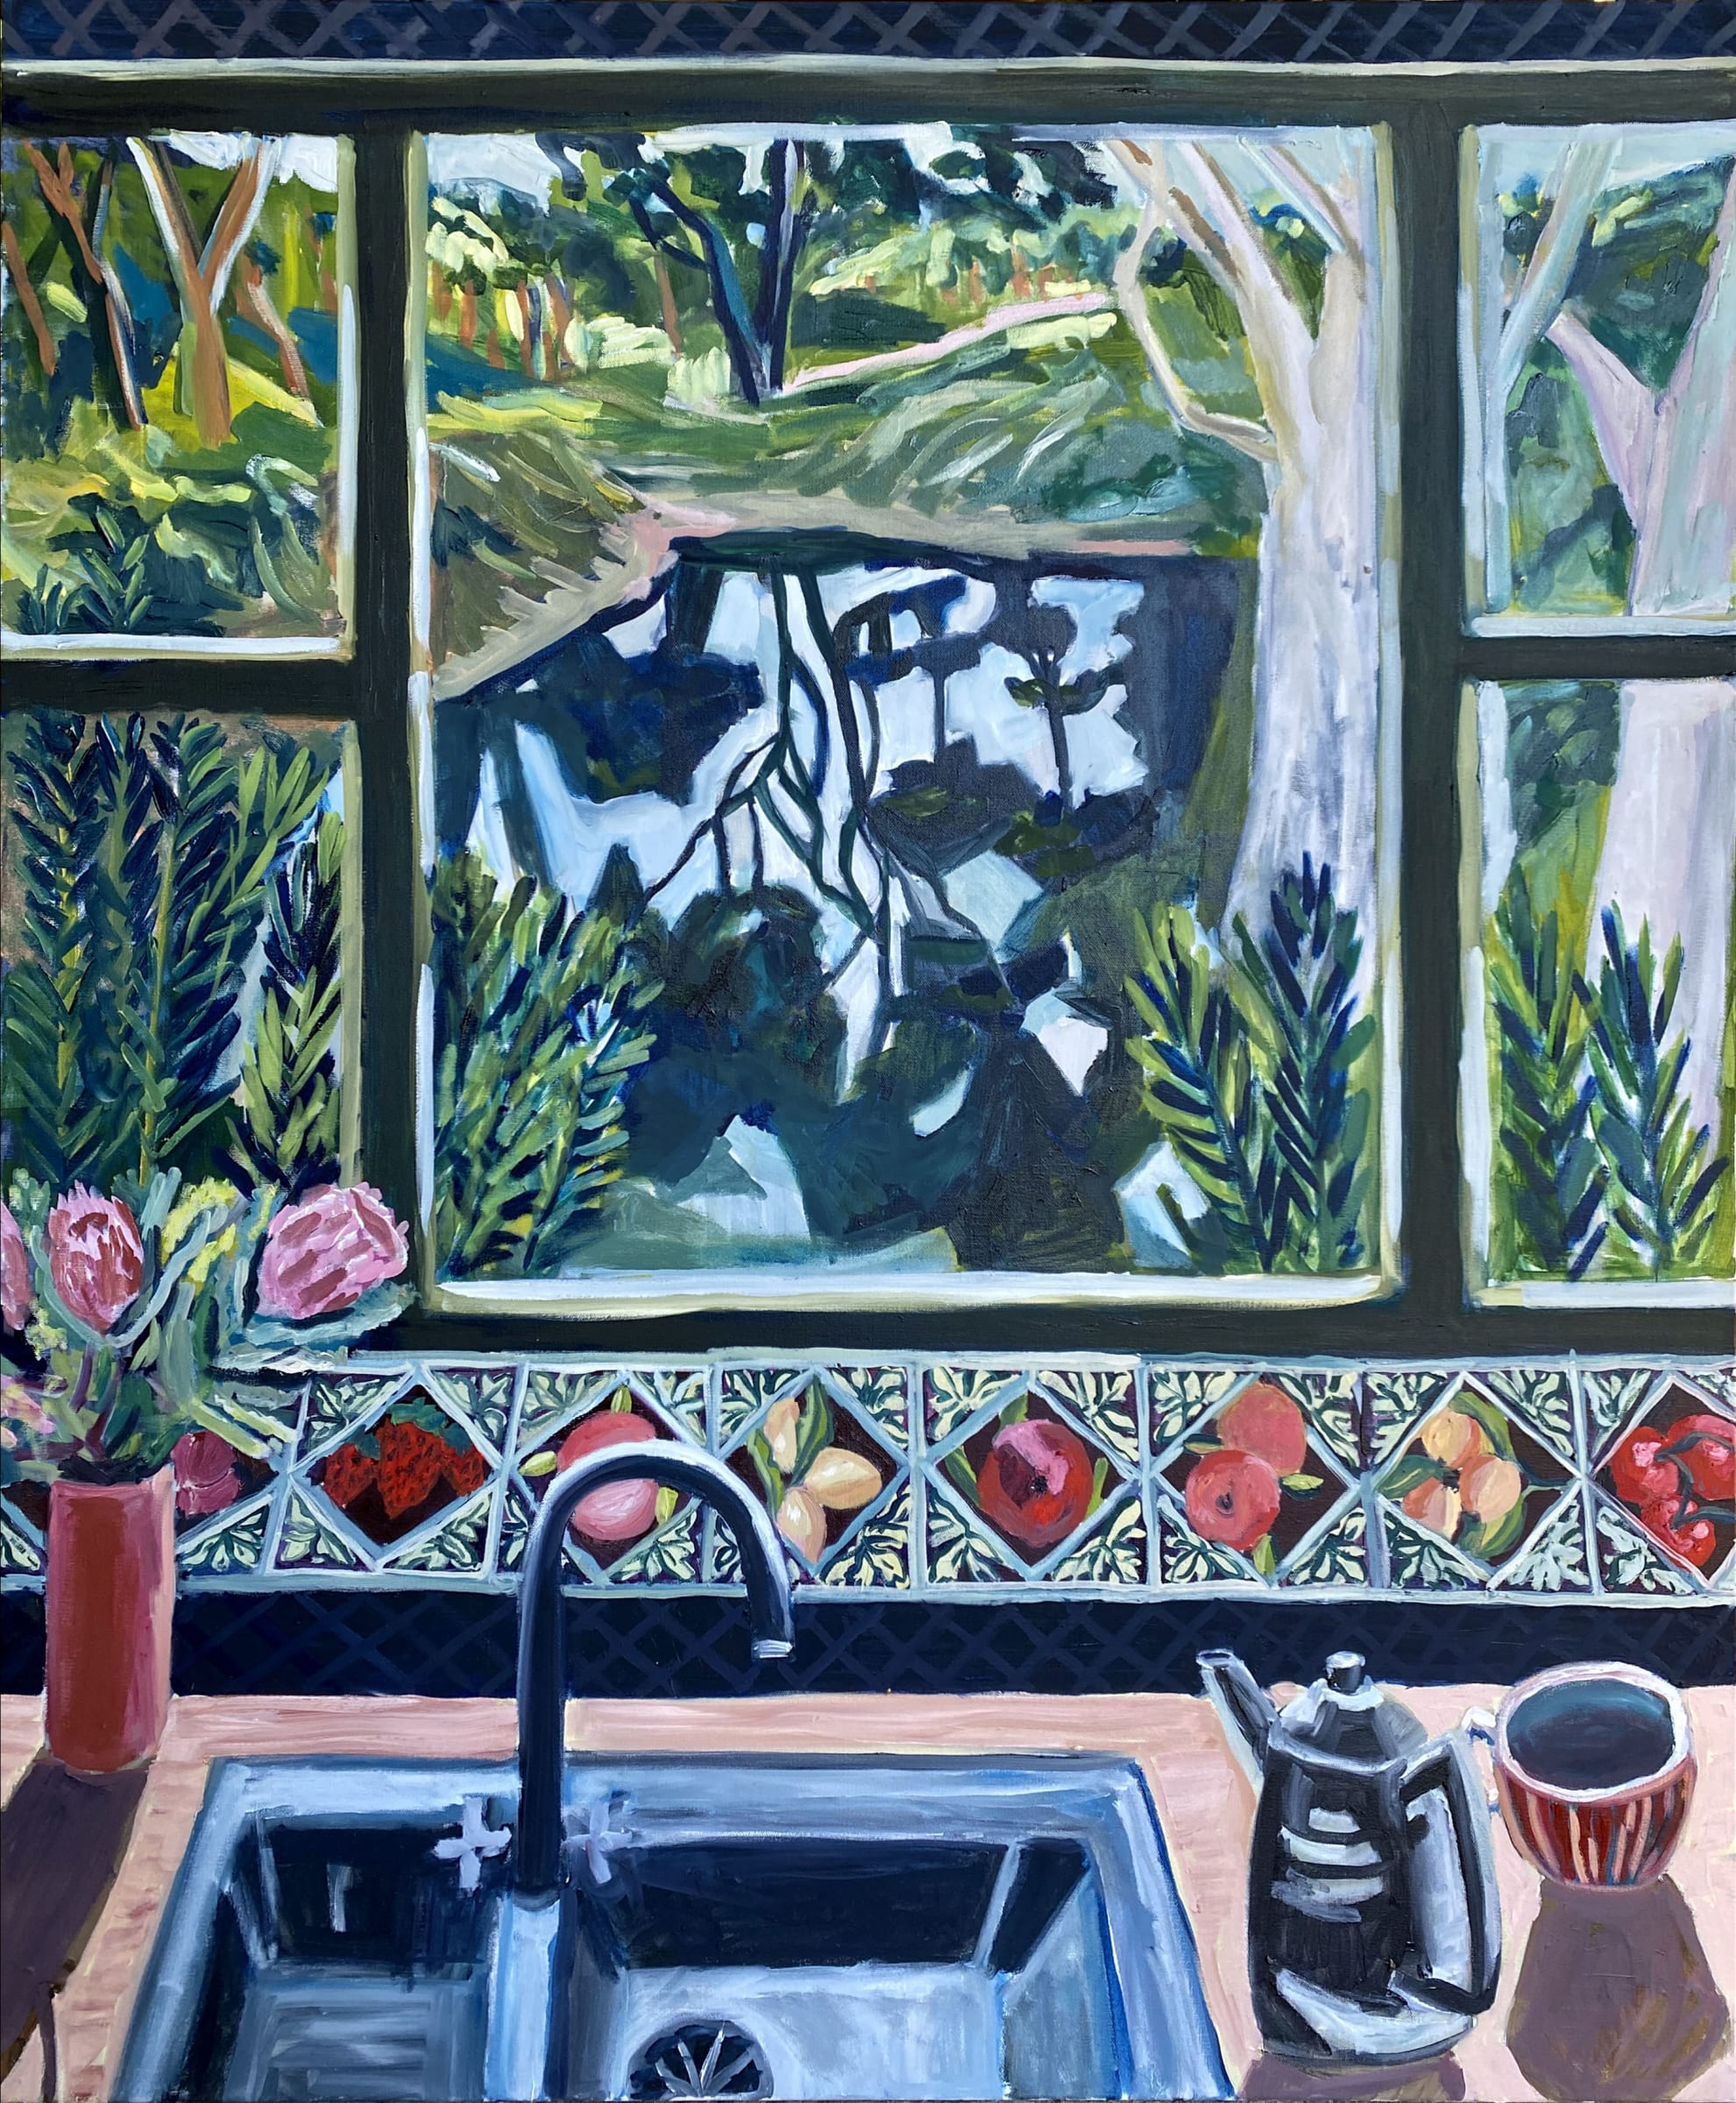 """<span class=""""link fancybox-details-link""""><a href=""""/artists/88-kate-nielsen/works/1472-kate-nielsen-view-of-the-dam/"""">View Detail Page</a></span><div class=""""artist""""><strong>Kate Nielsen</strong></div> <div class=""""title""""><em>View of the Dam</em></div> <div class=""""medium"""">Oil on canvas</div> <div class=""""dimensions"""">48 x 40 inches<br /> 121 x 101 cm</div>"""